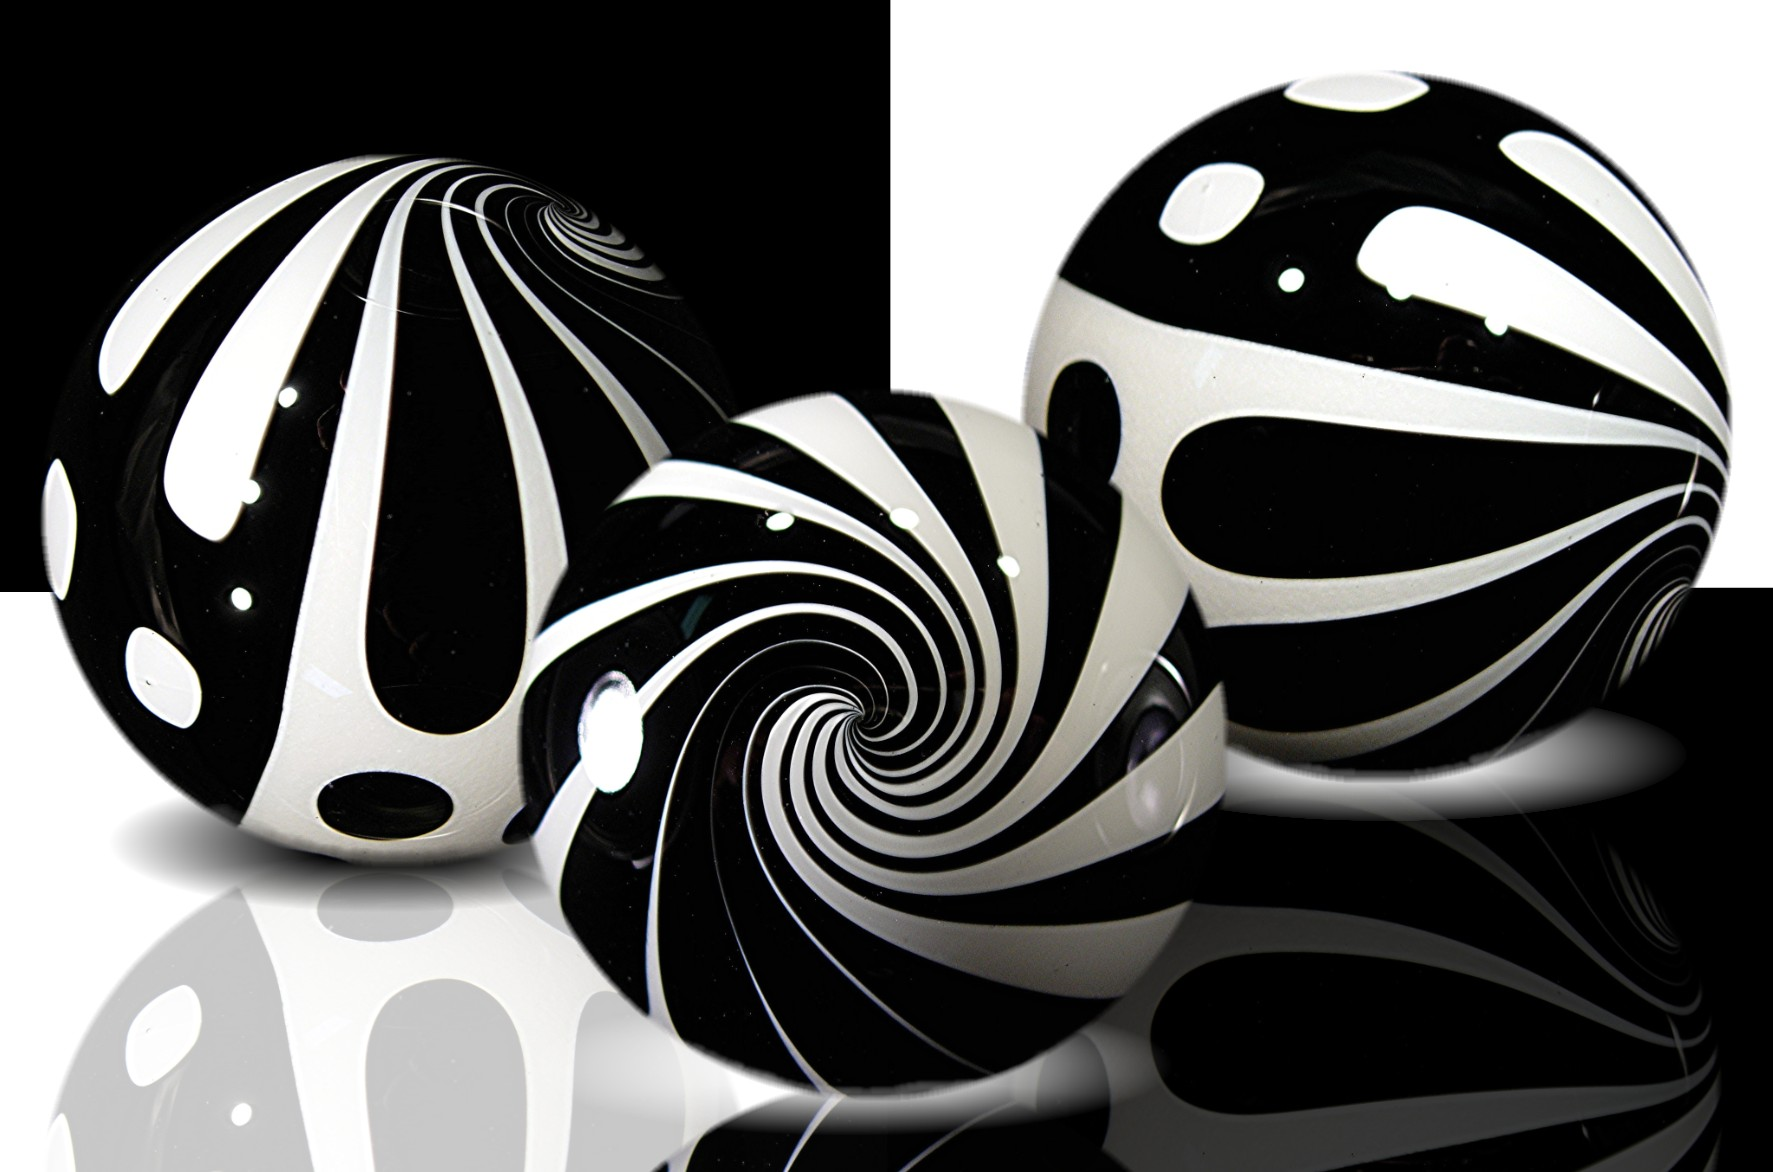 Black white colors photo 30711231 fanpop for Cool designs in black and white